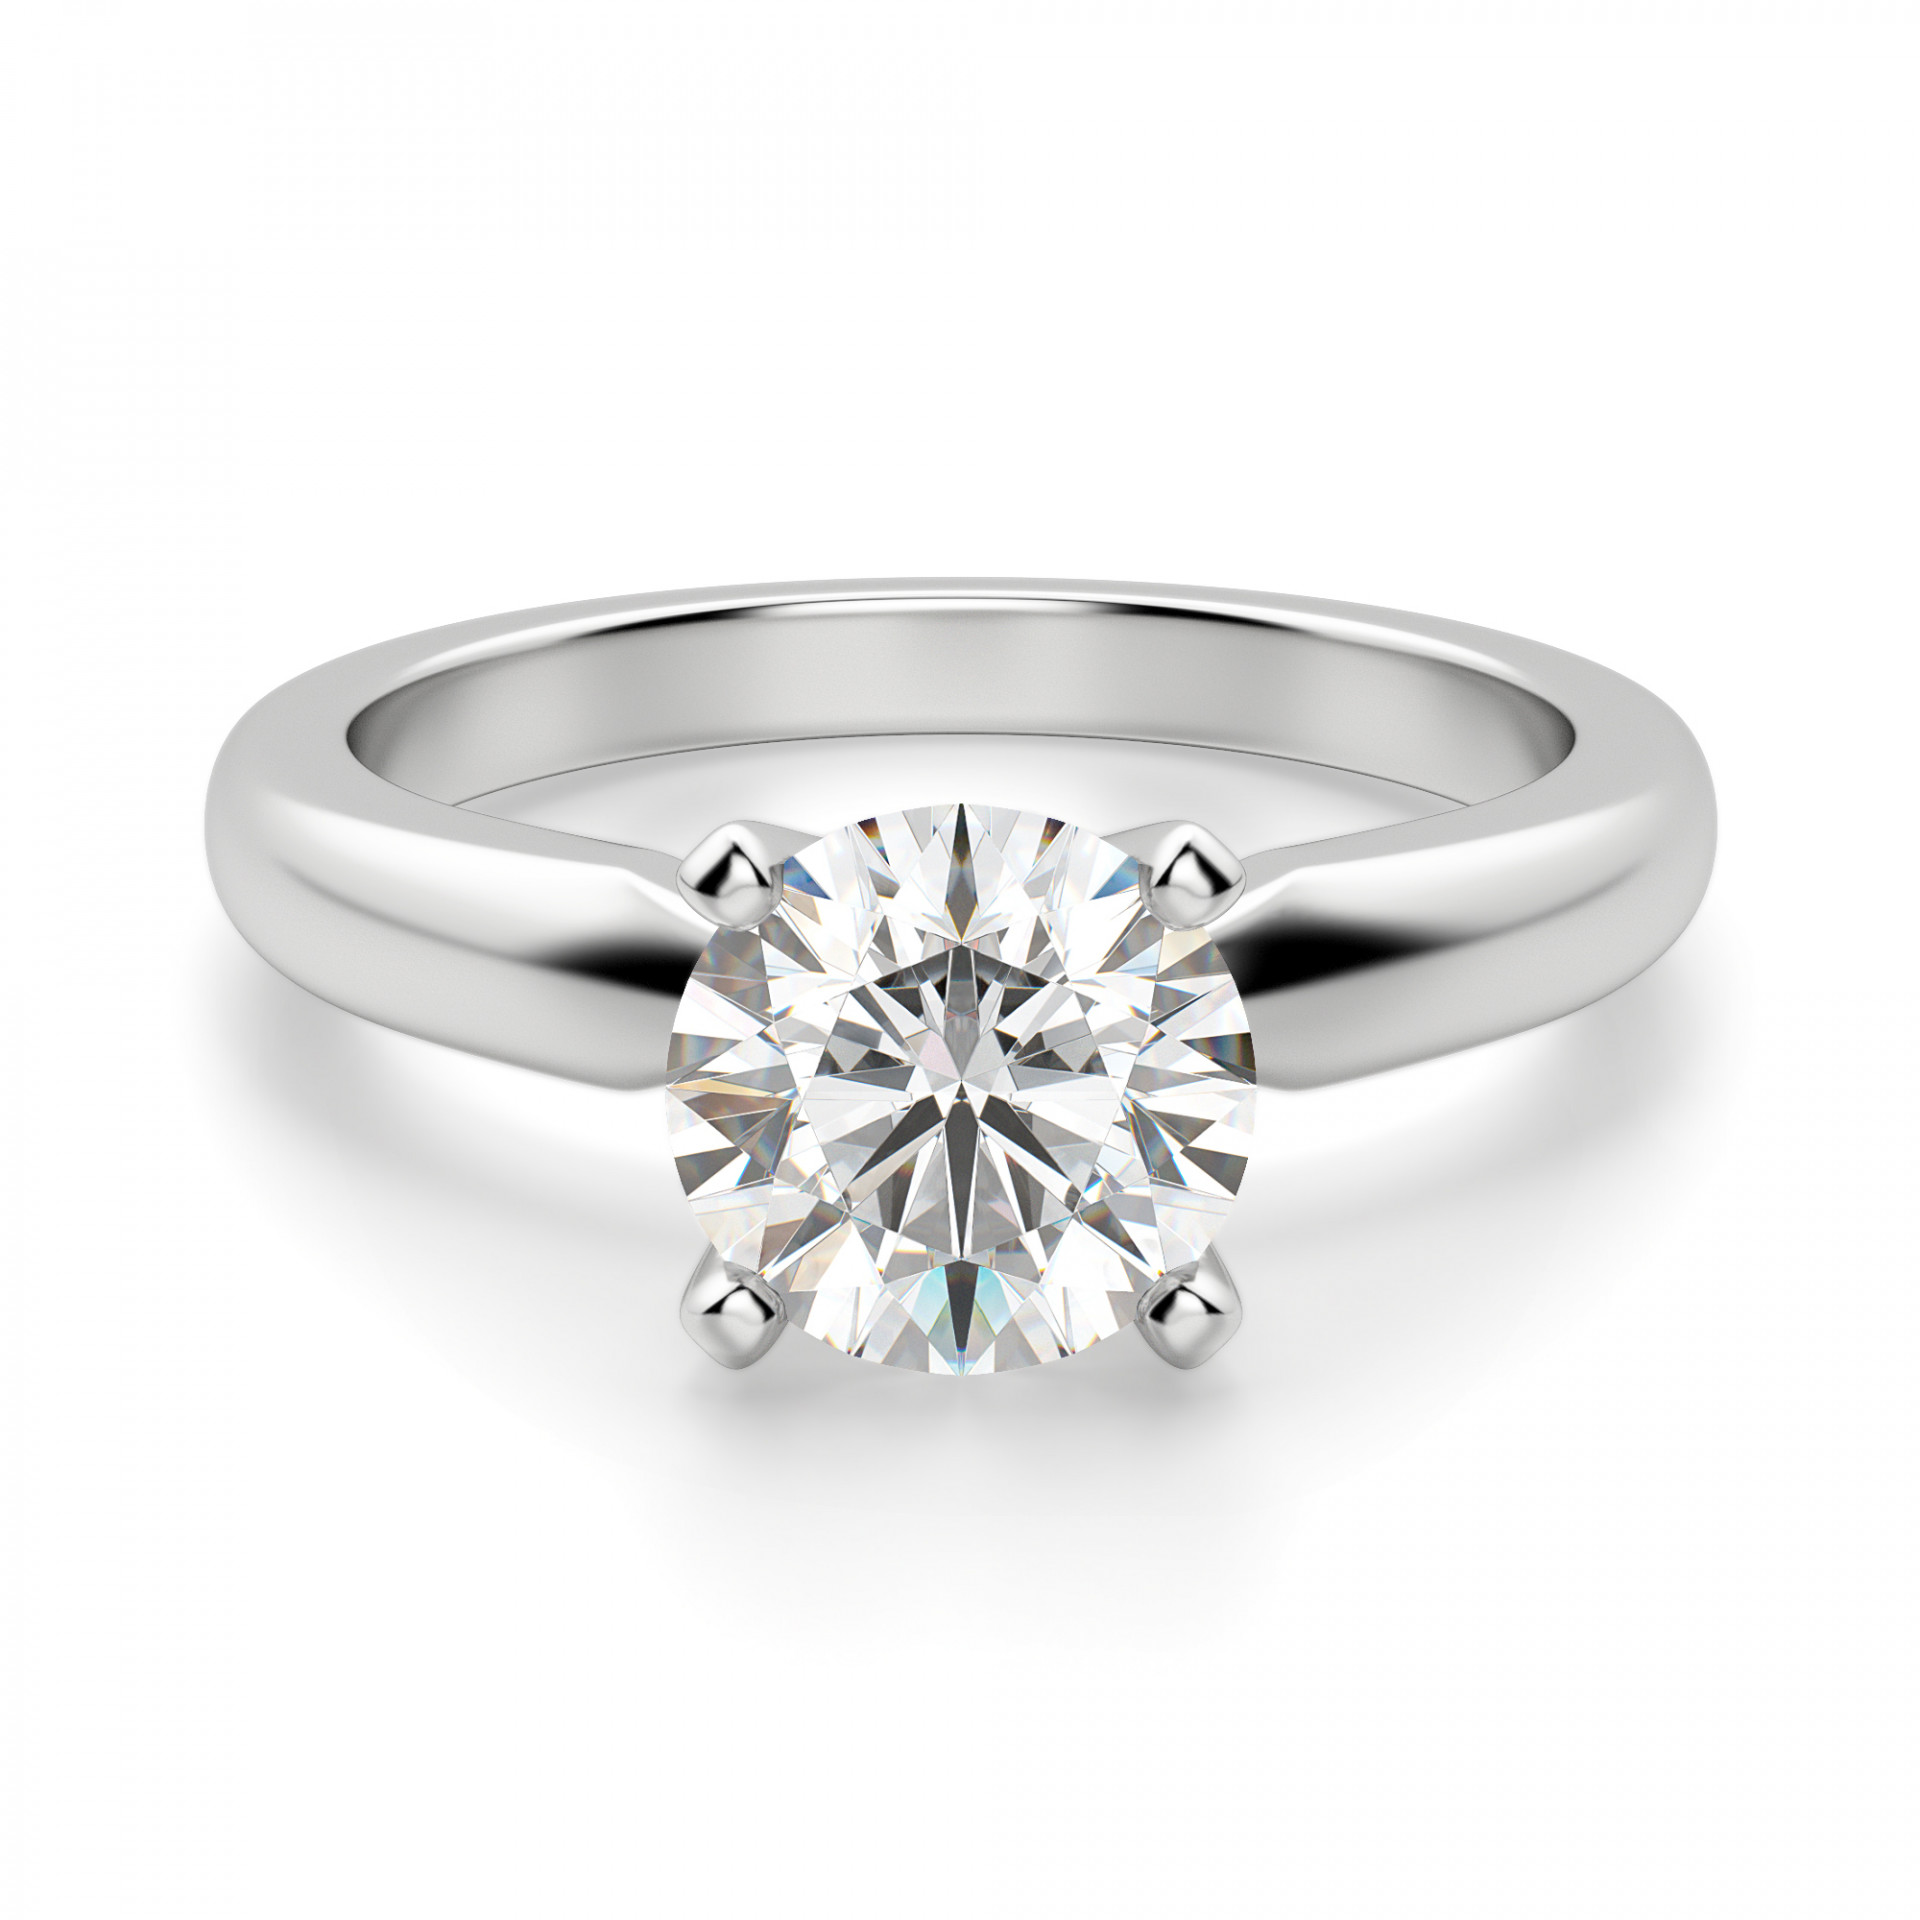 ee2117ac1ece6 Tiffany-Style Solitaire Round Cut Engagement Ring